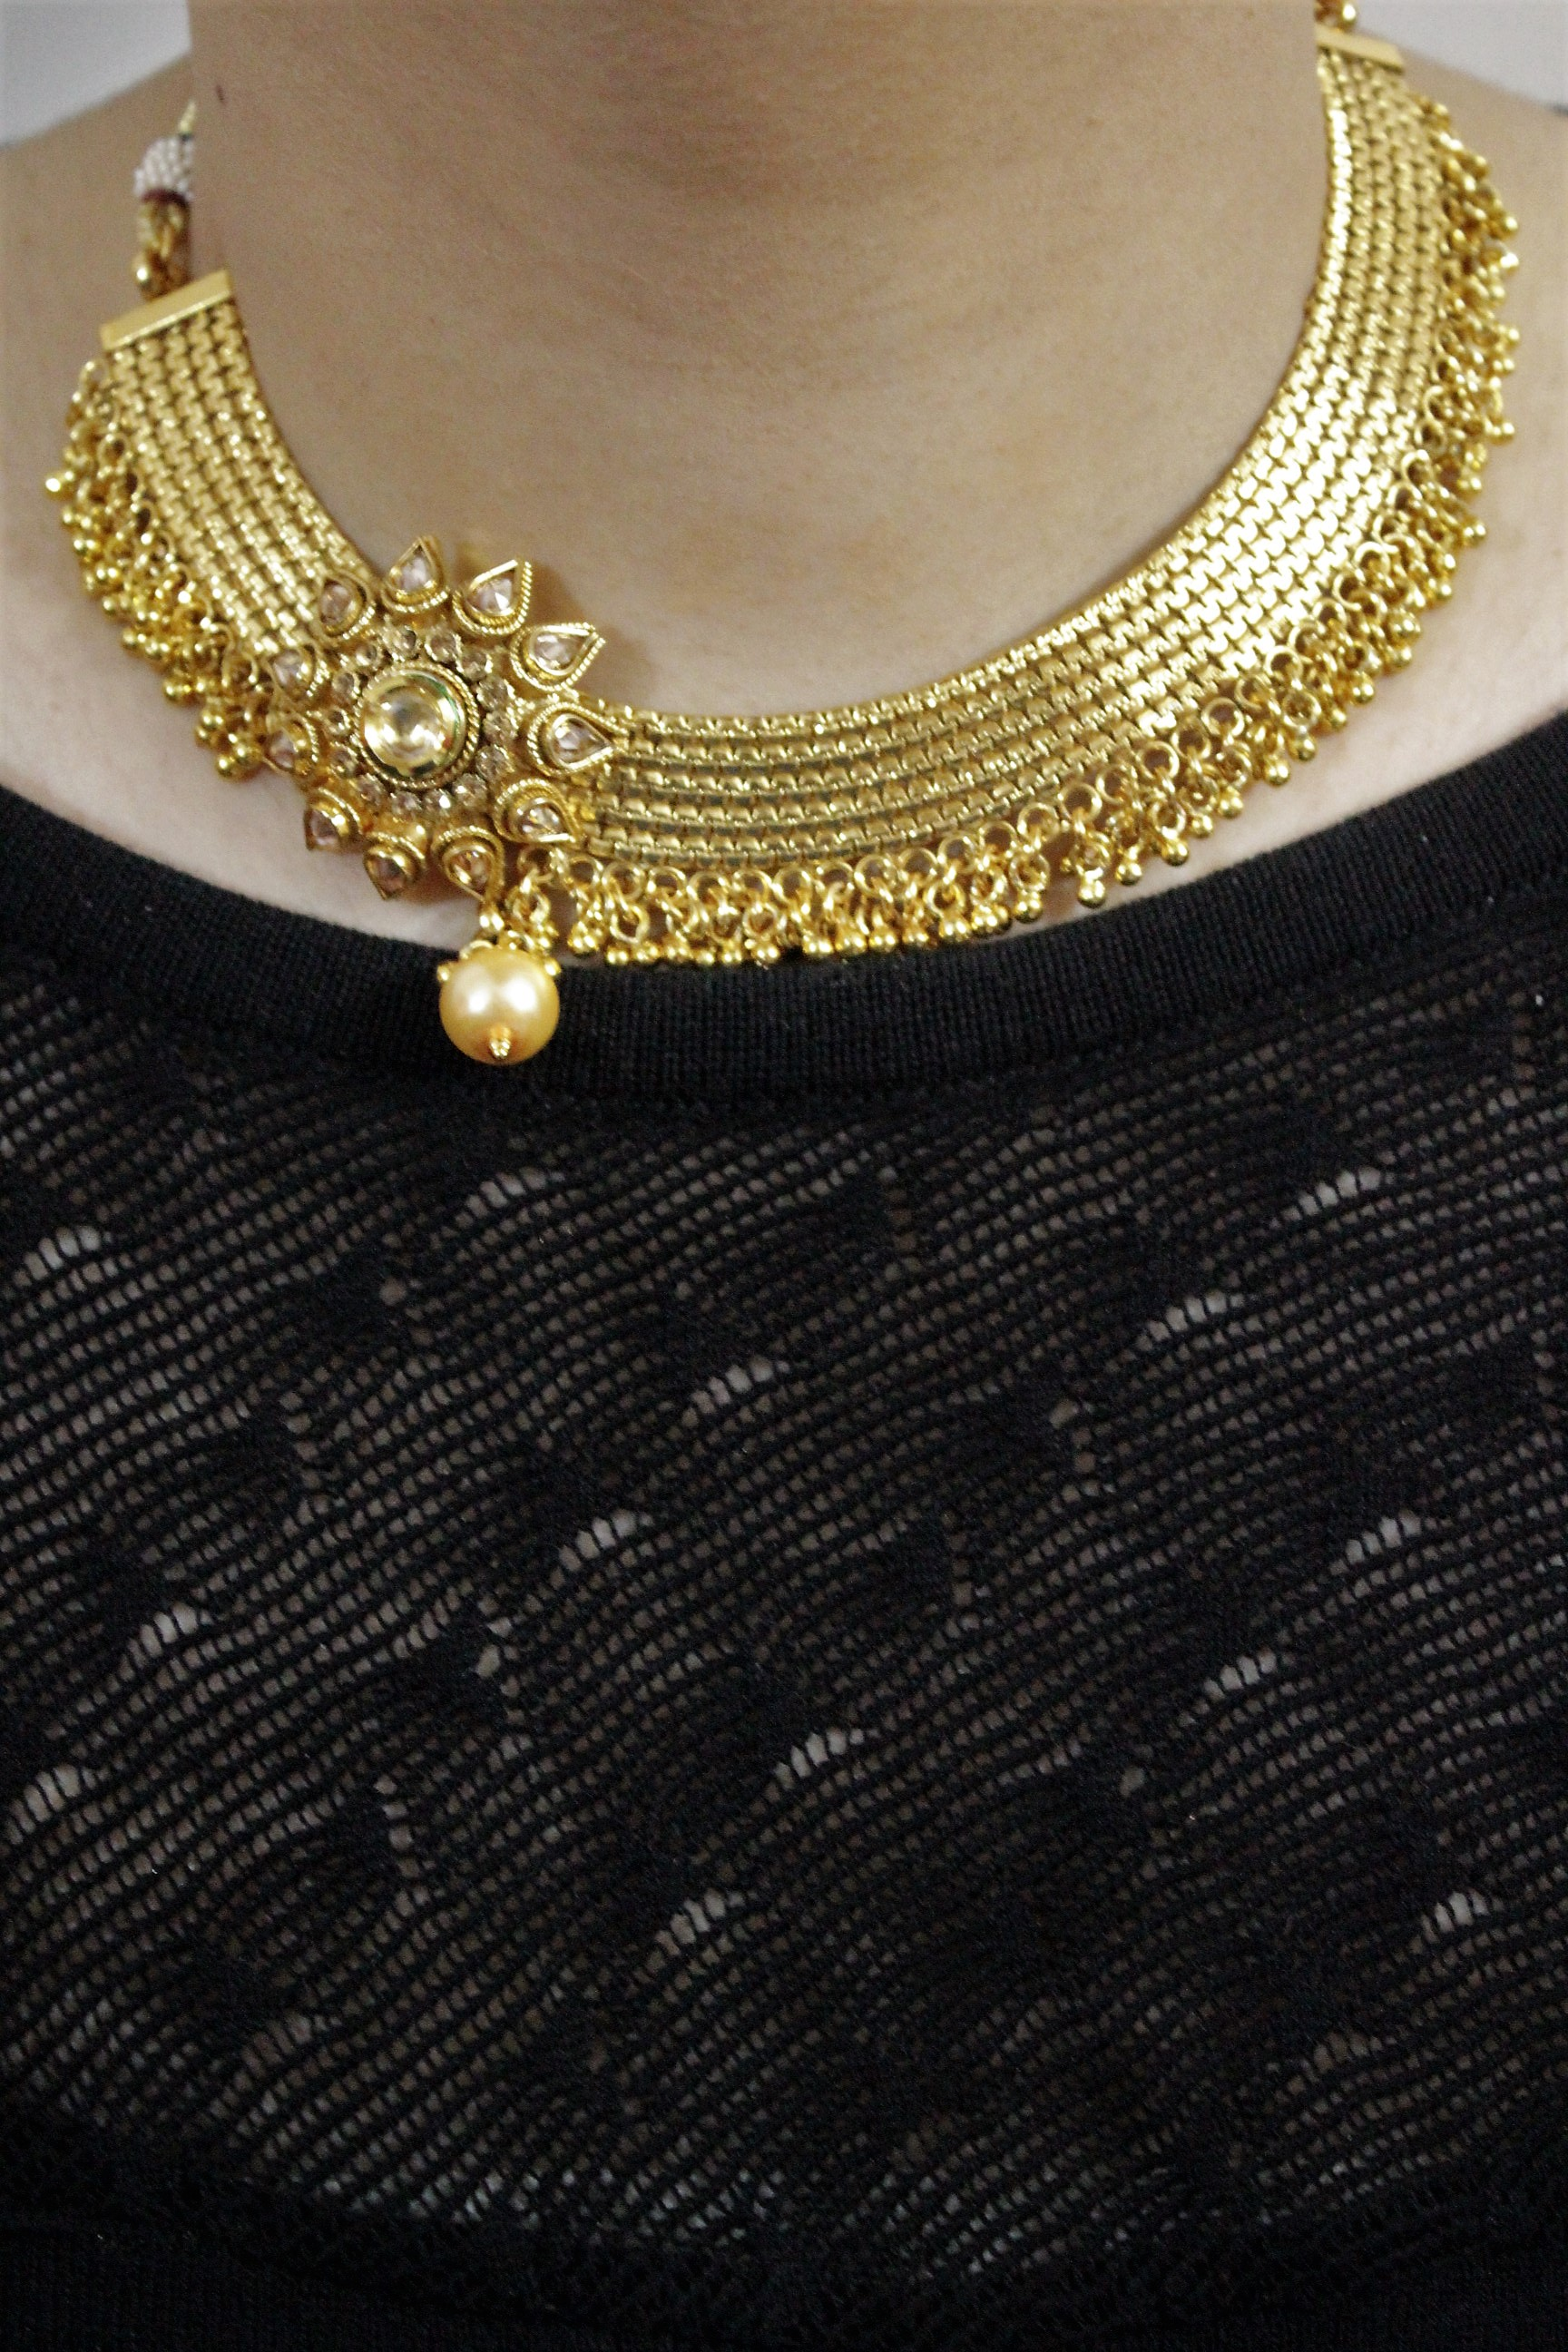 IndiHaute, artificial neck jewellery online in faridabad , artificial neck jewellery online shopping in faridabad , artificial neck jewellery for engagement in faridabad